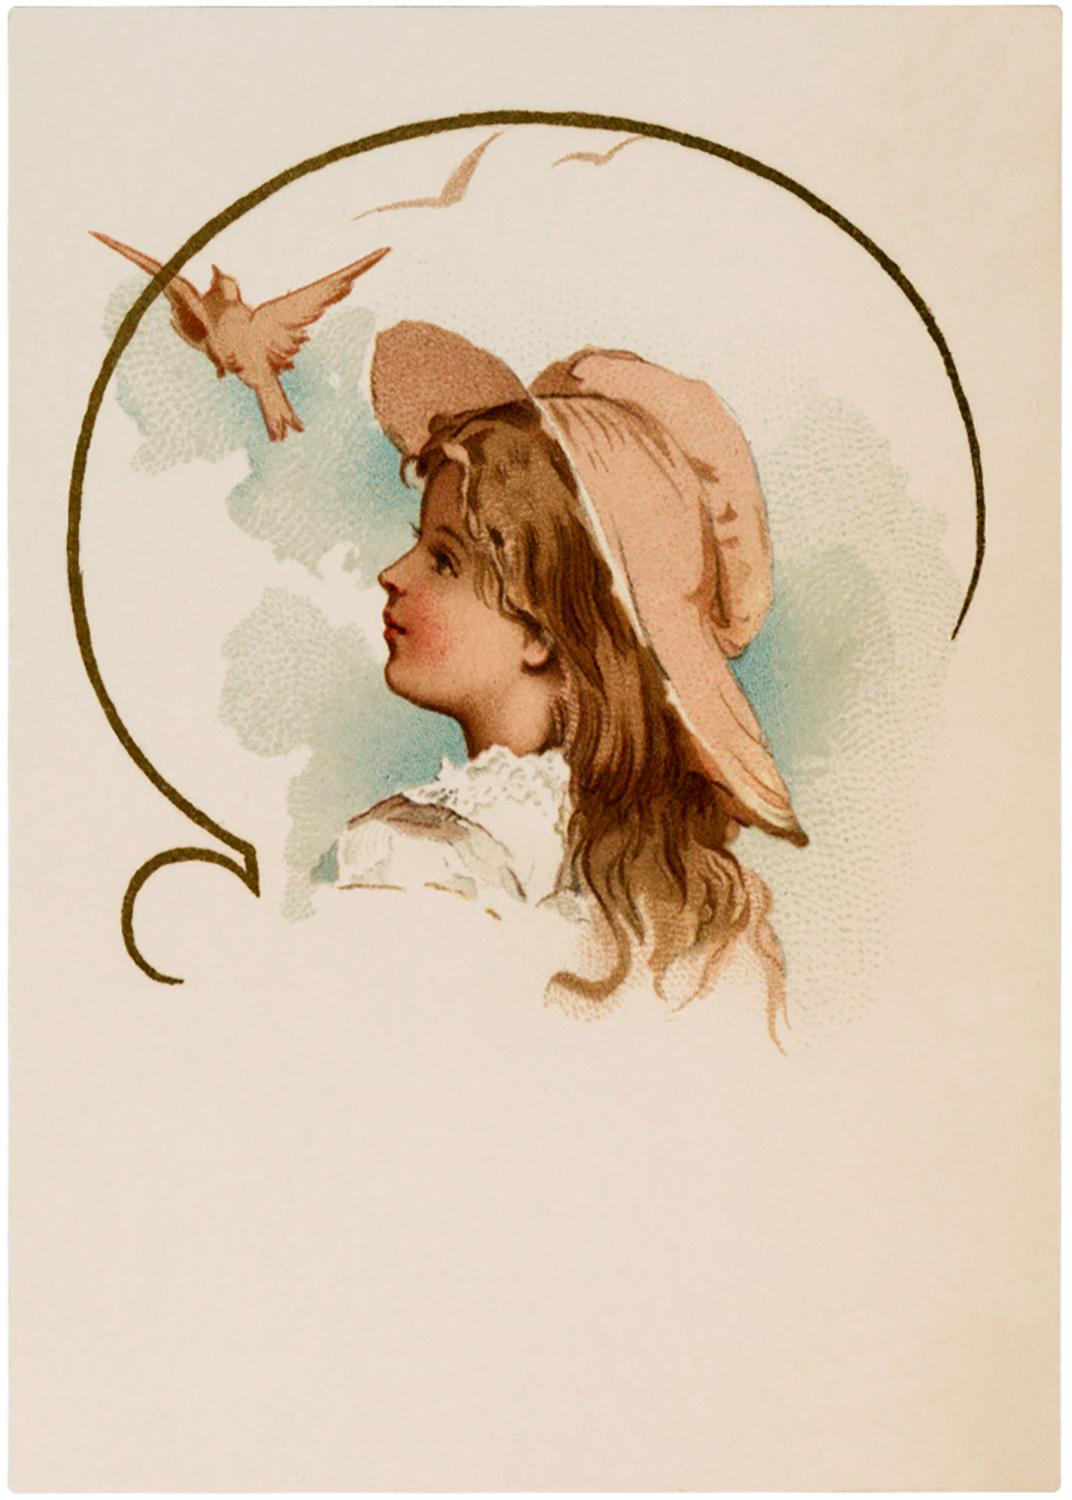 Vintage Girl with Bird Image